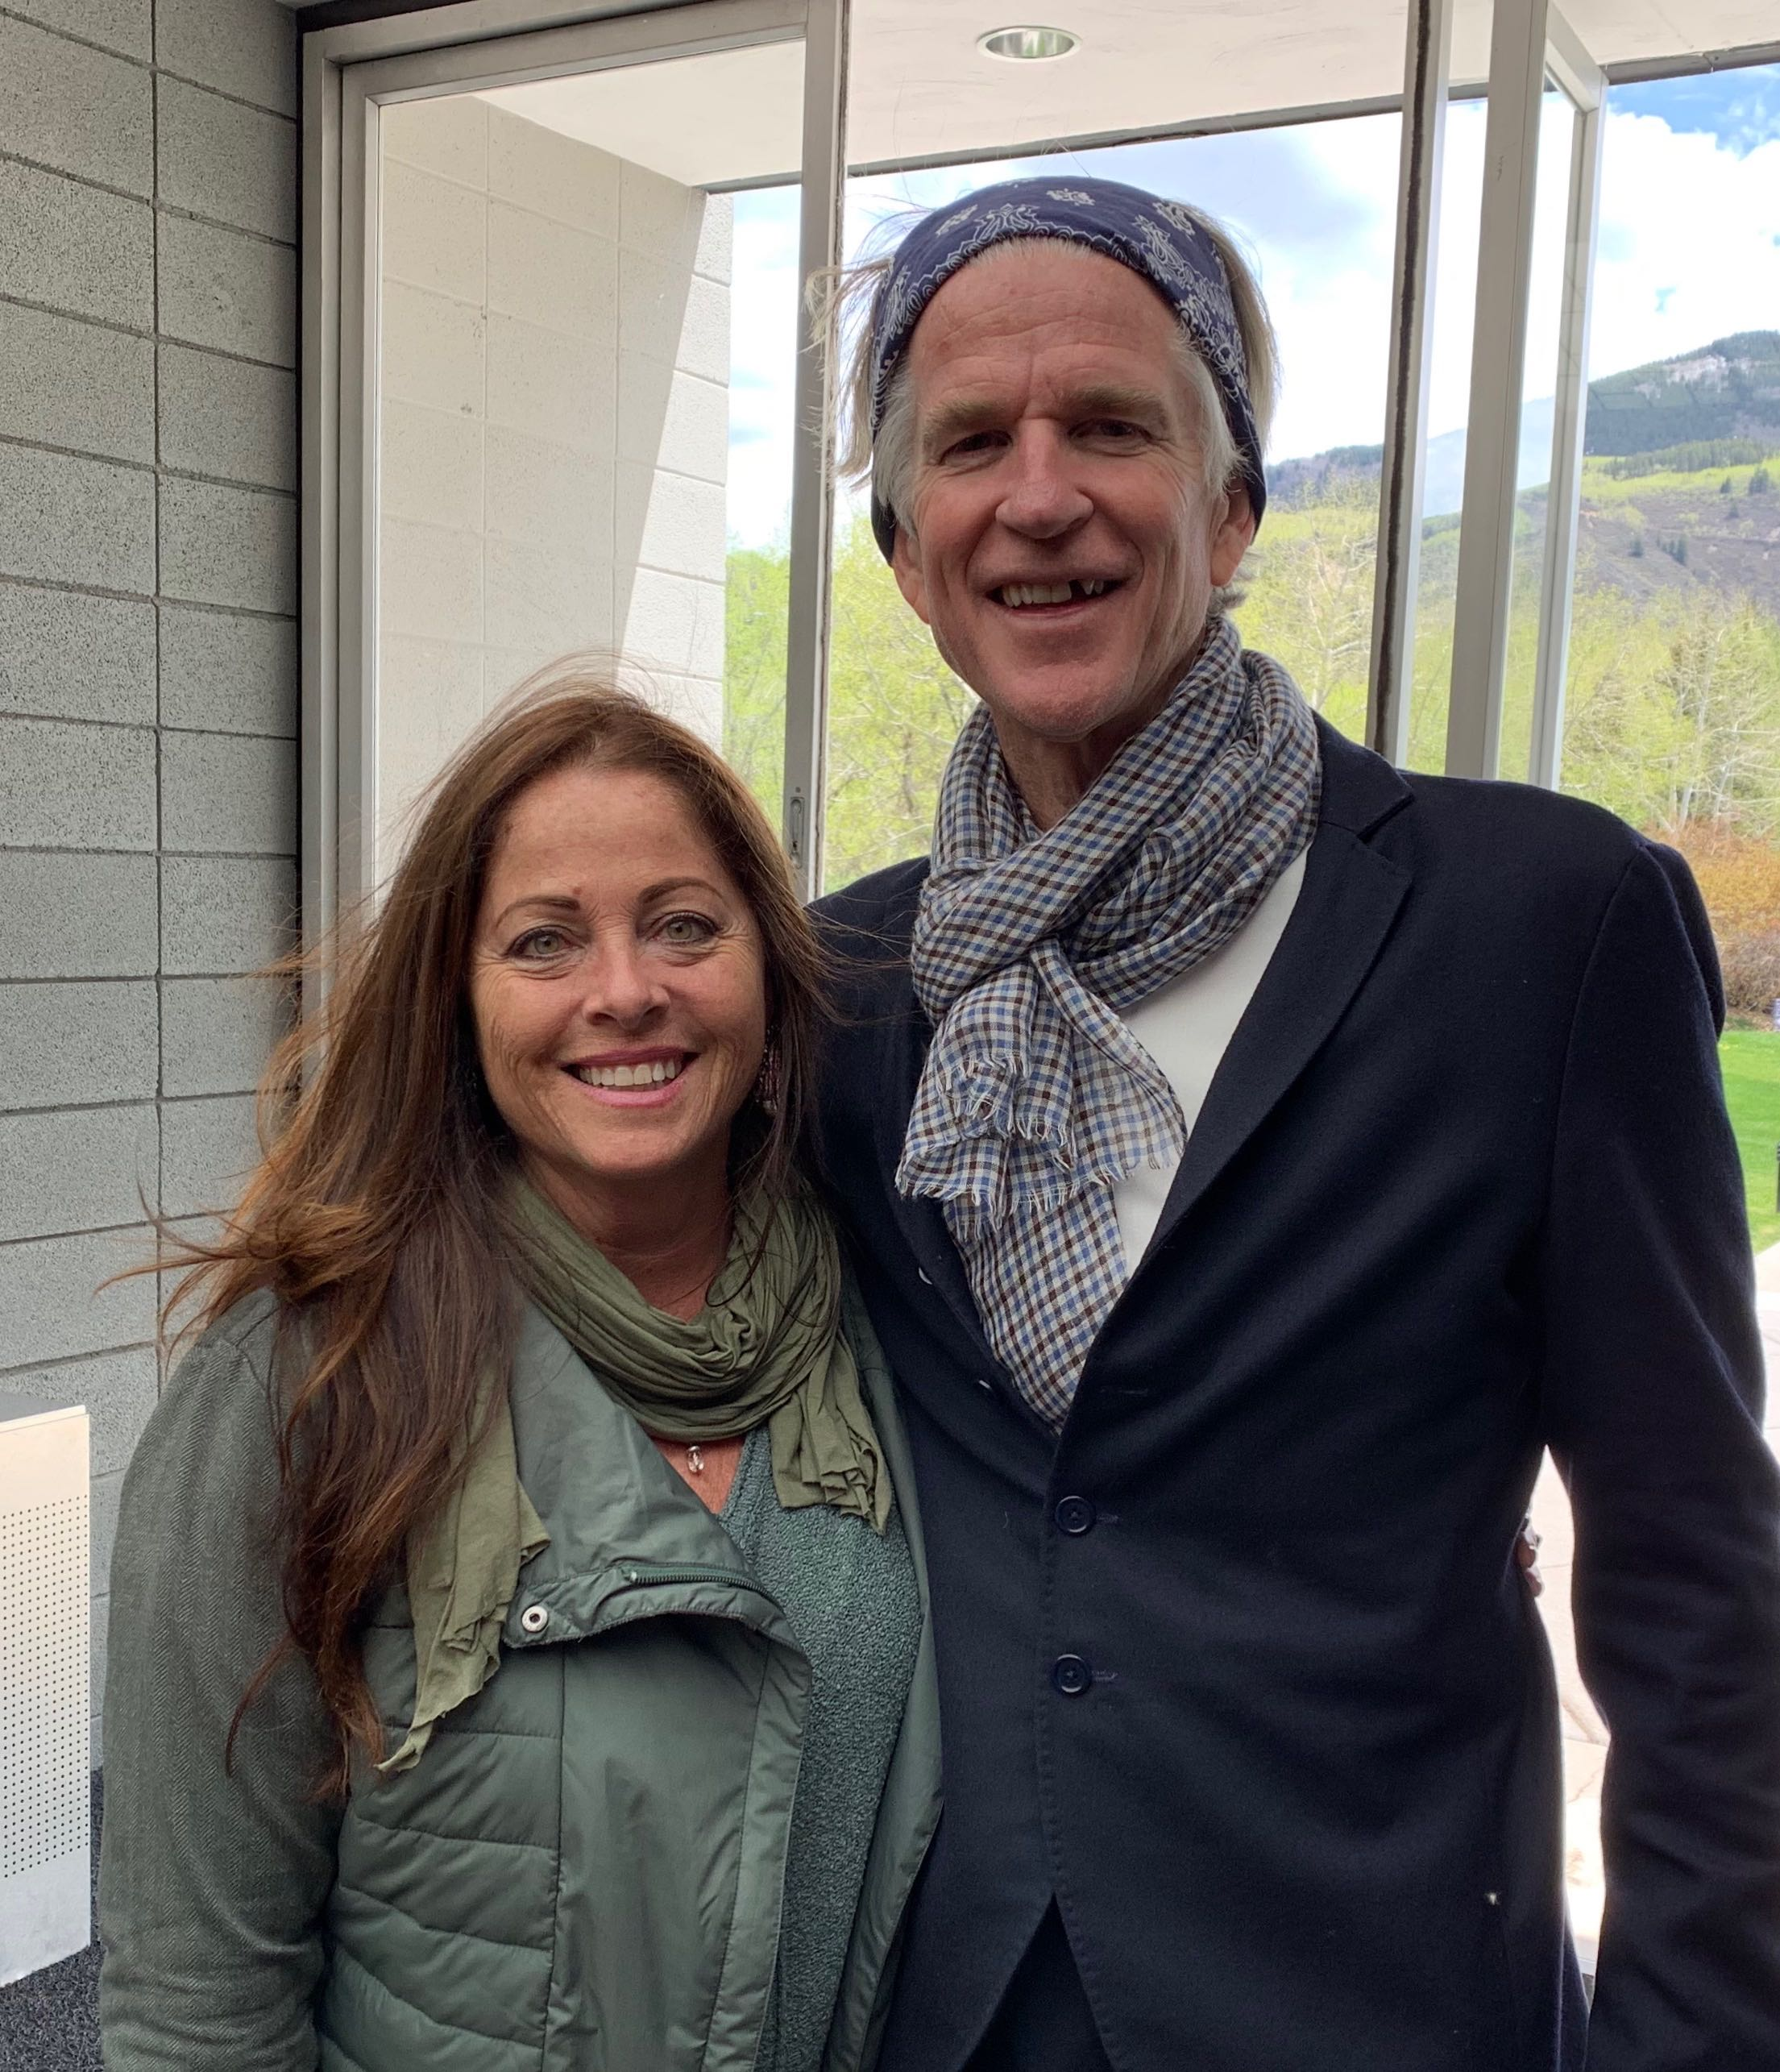 Wendy with Matthew Modine, a World Tree fan.